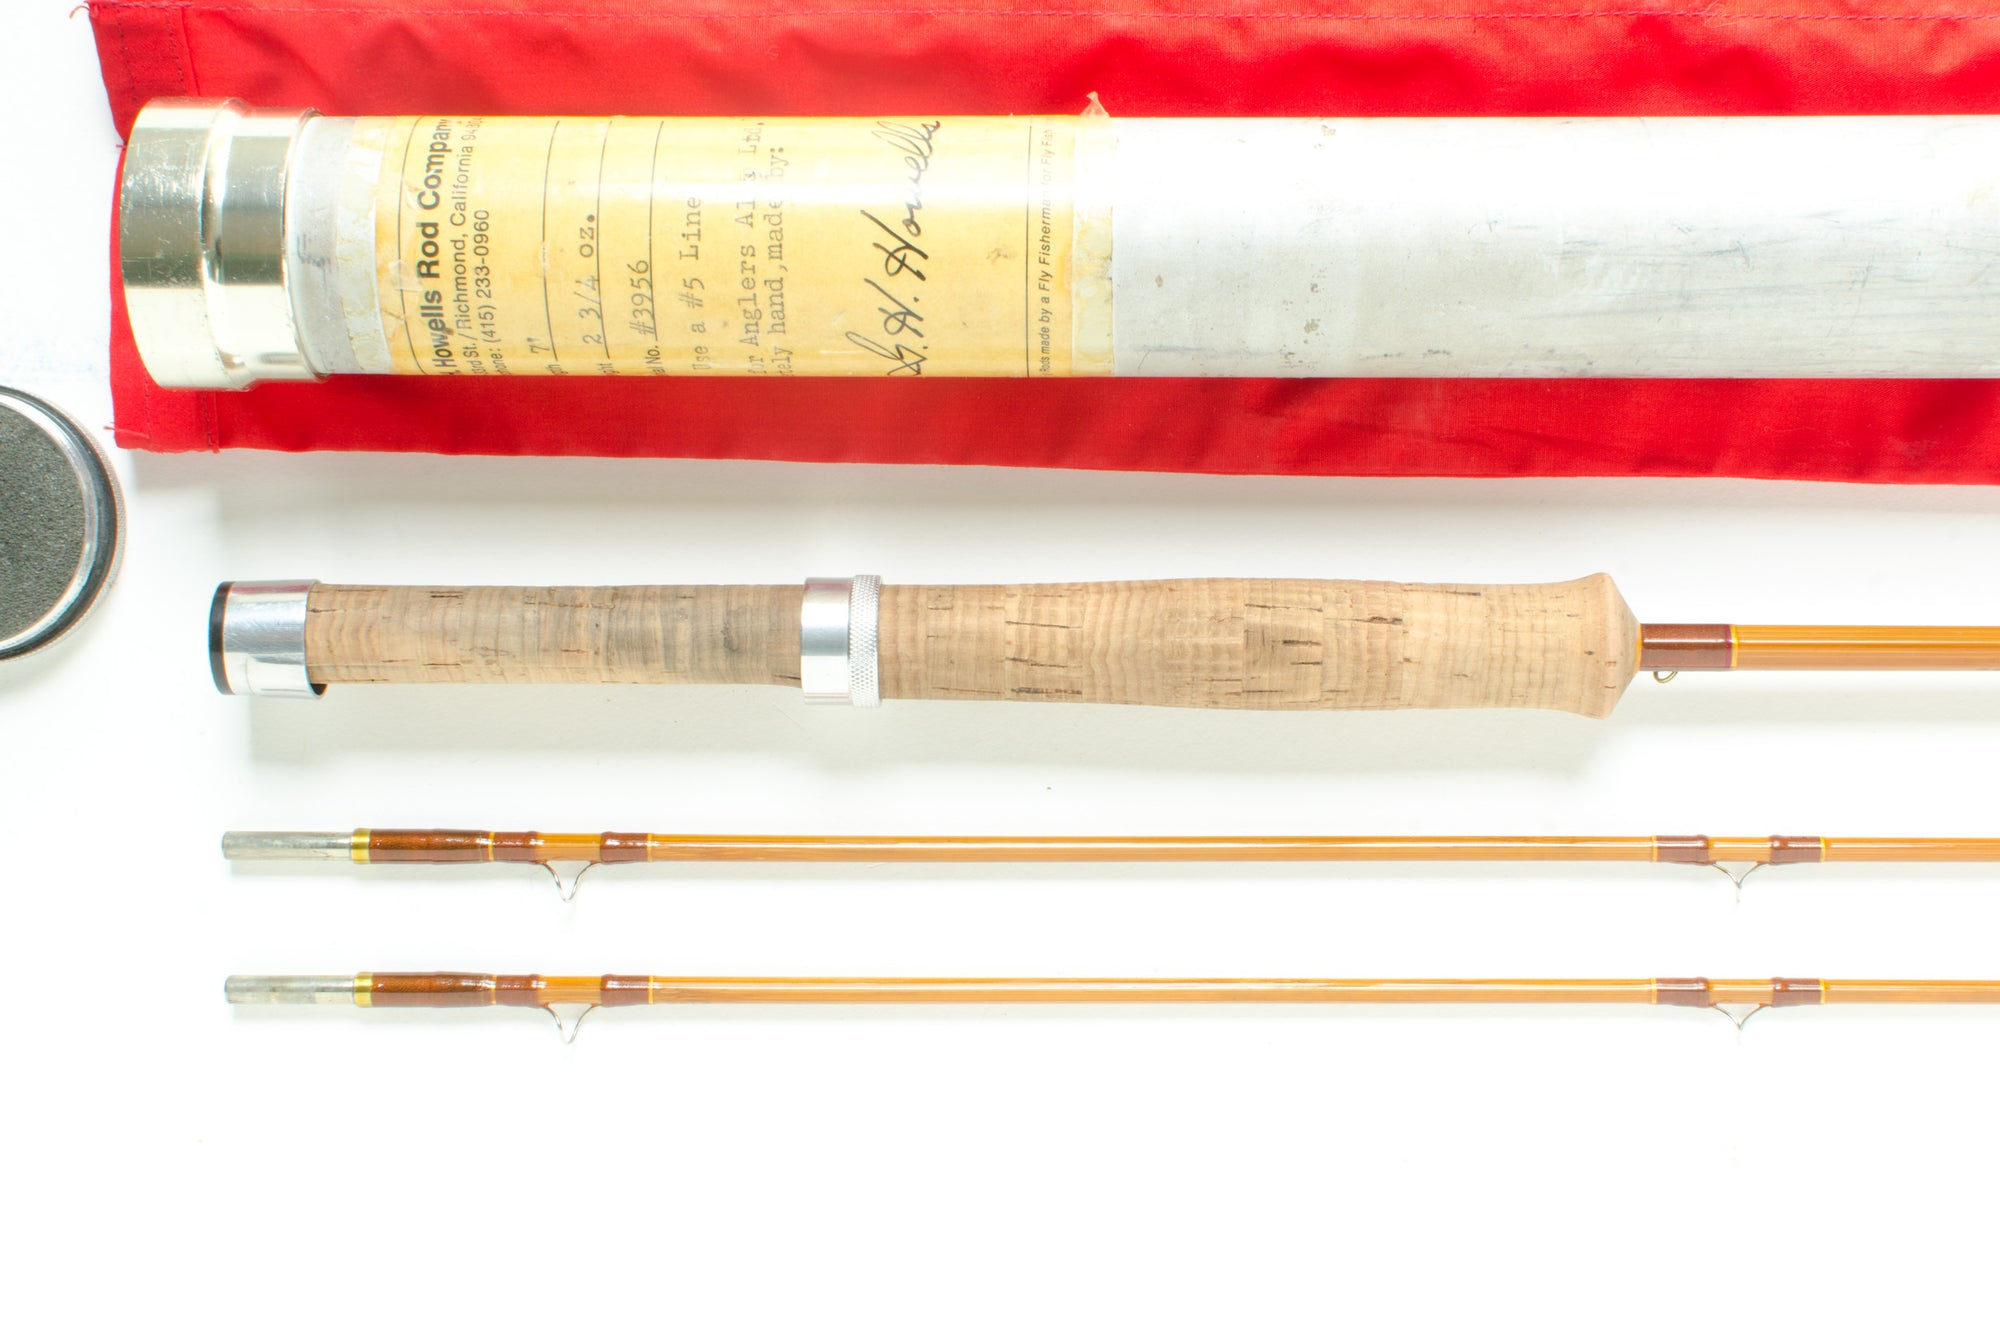 Gary Howells Fly Rod 7' 2/2 #5